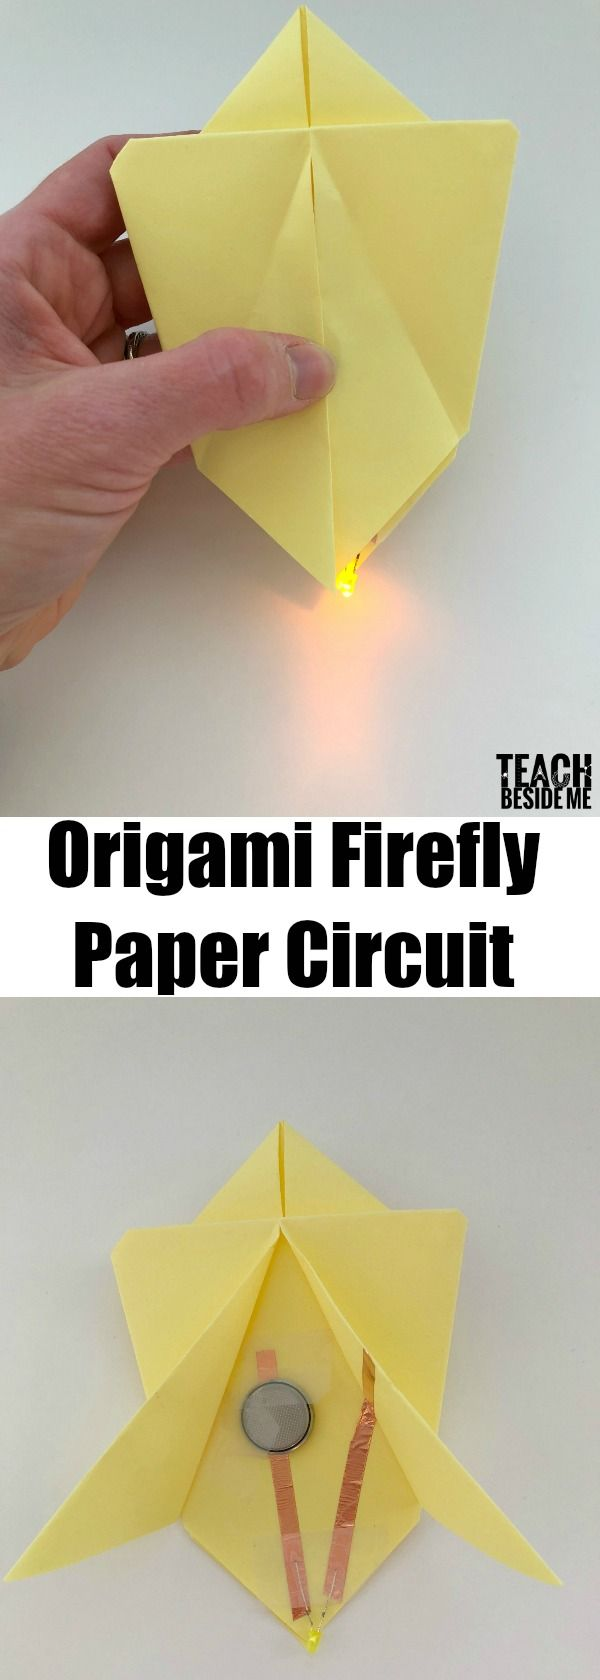 Origami firefly paper circuit. Hands-on STEM for kids!  Fun technology art and nature fusion! #STEM #handsonlearning #insects #technology #STEAM  via @karyntripp